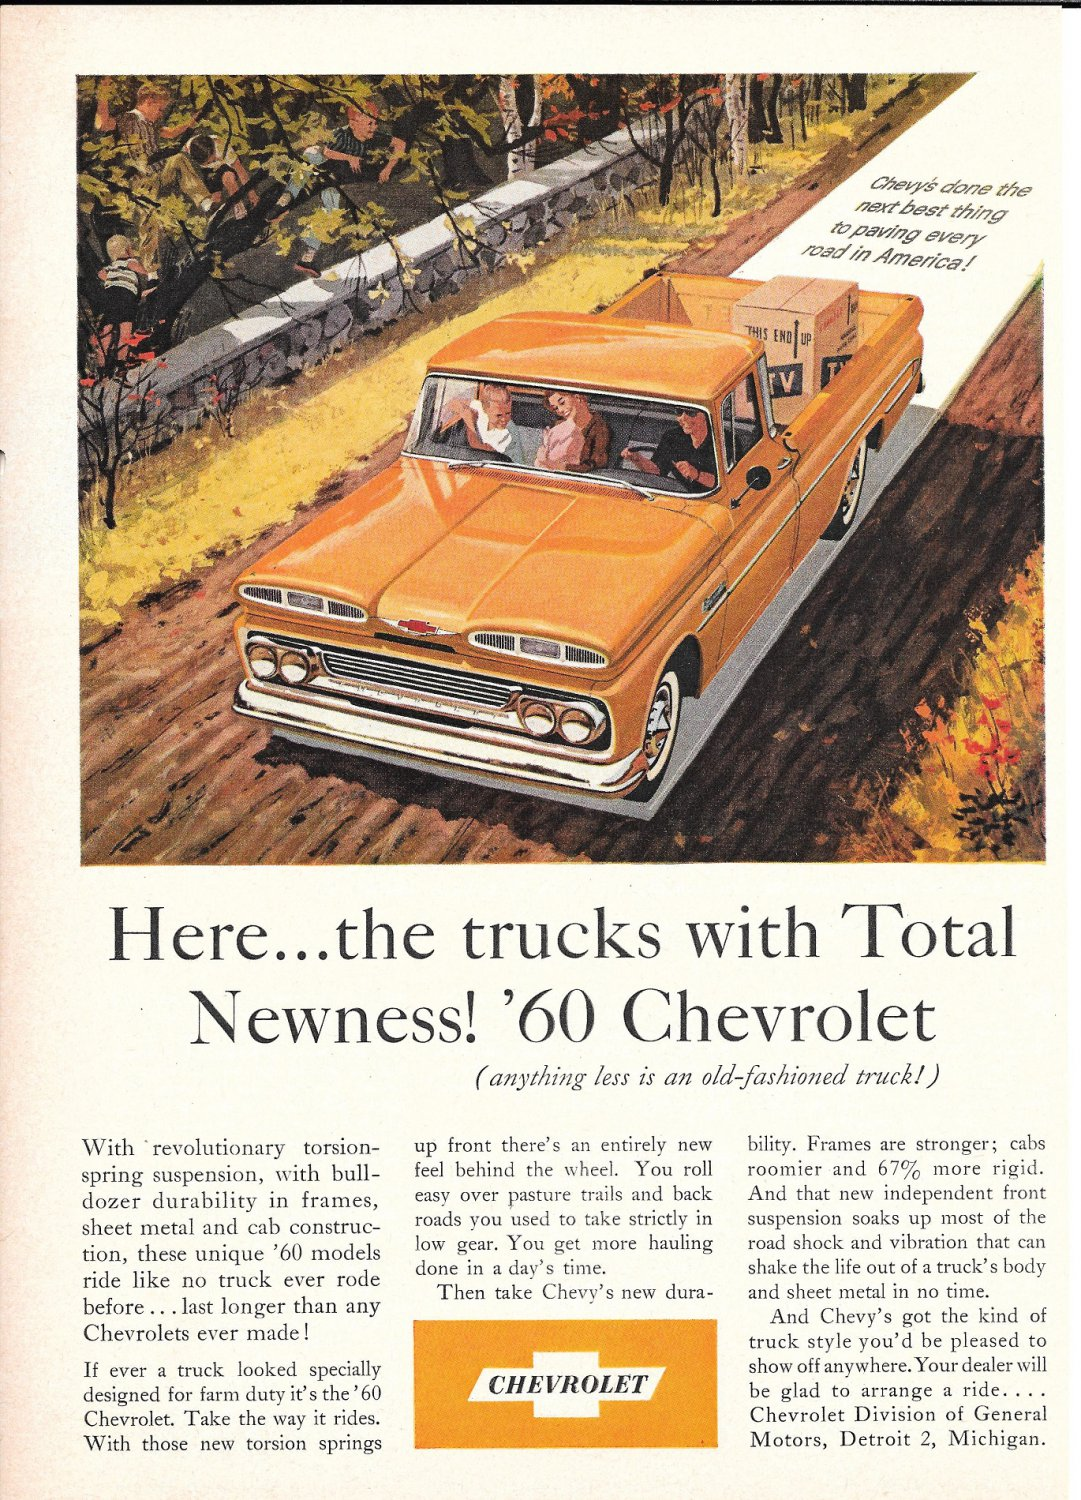 1960 Chevrolet Pickup Truck With Total Newness Ad